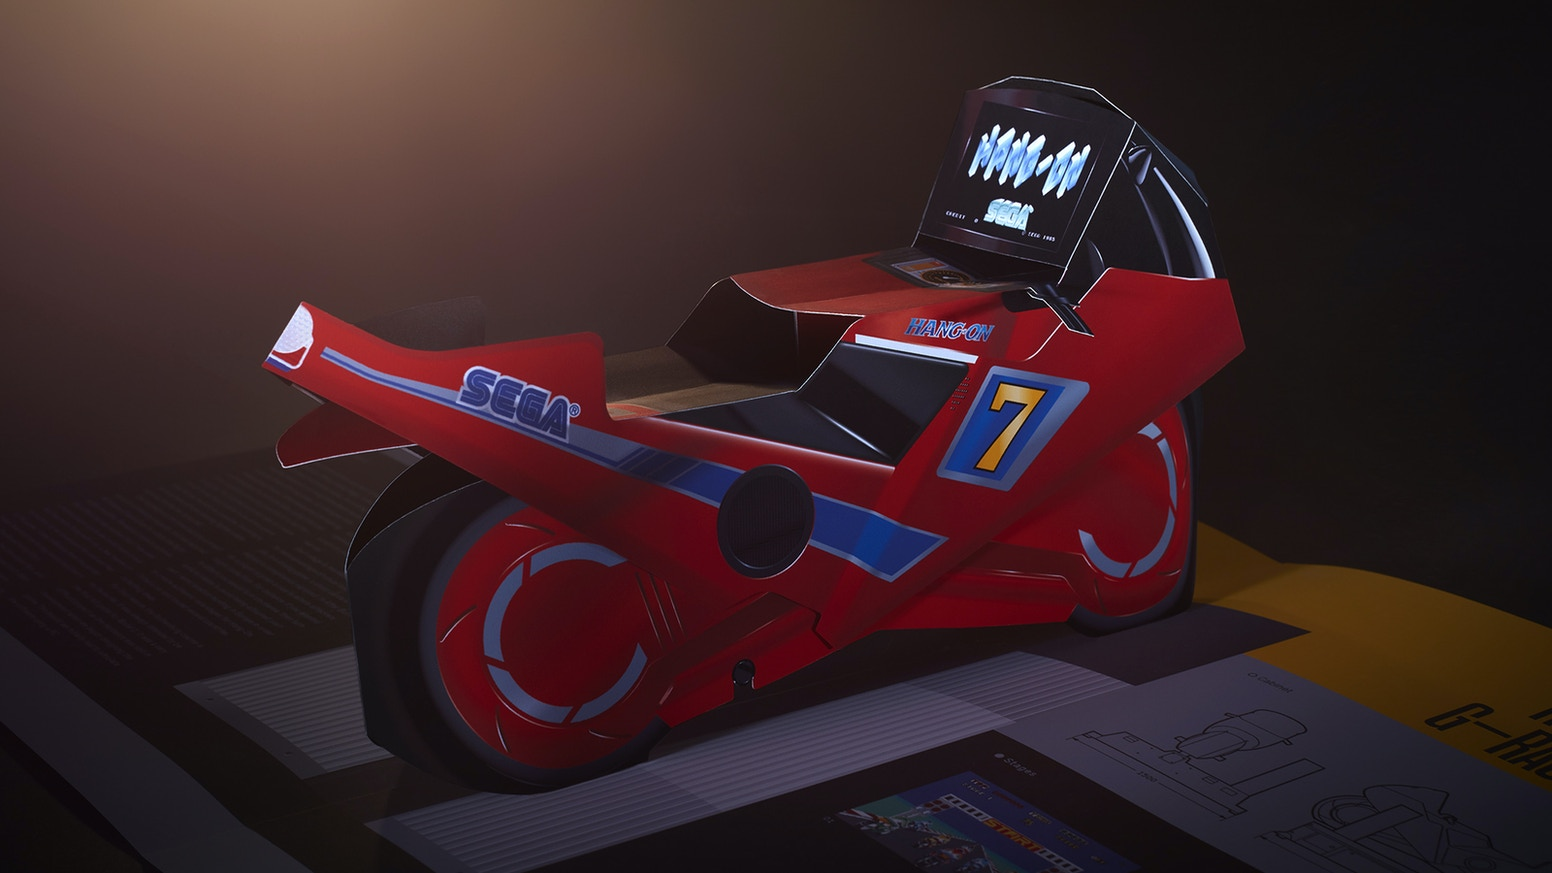 SEGA's greatest arcade cabinets as pop-up sculptures: Hang-On, Space Harrier, Thunder Blade, After Burner, Out Run, and Power Drift